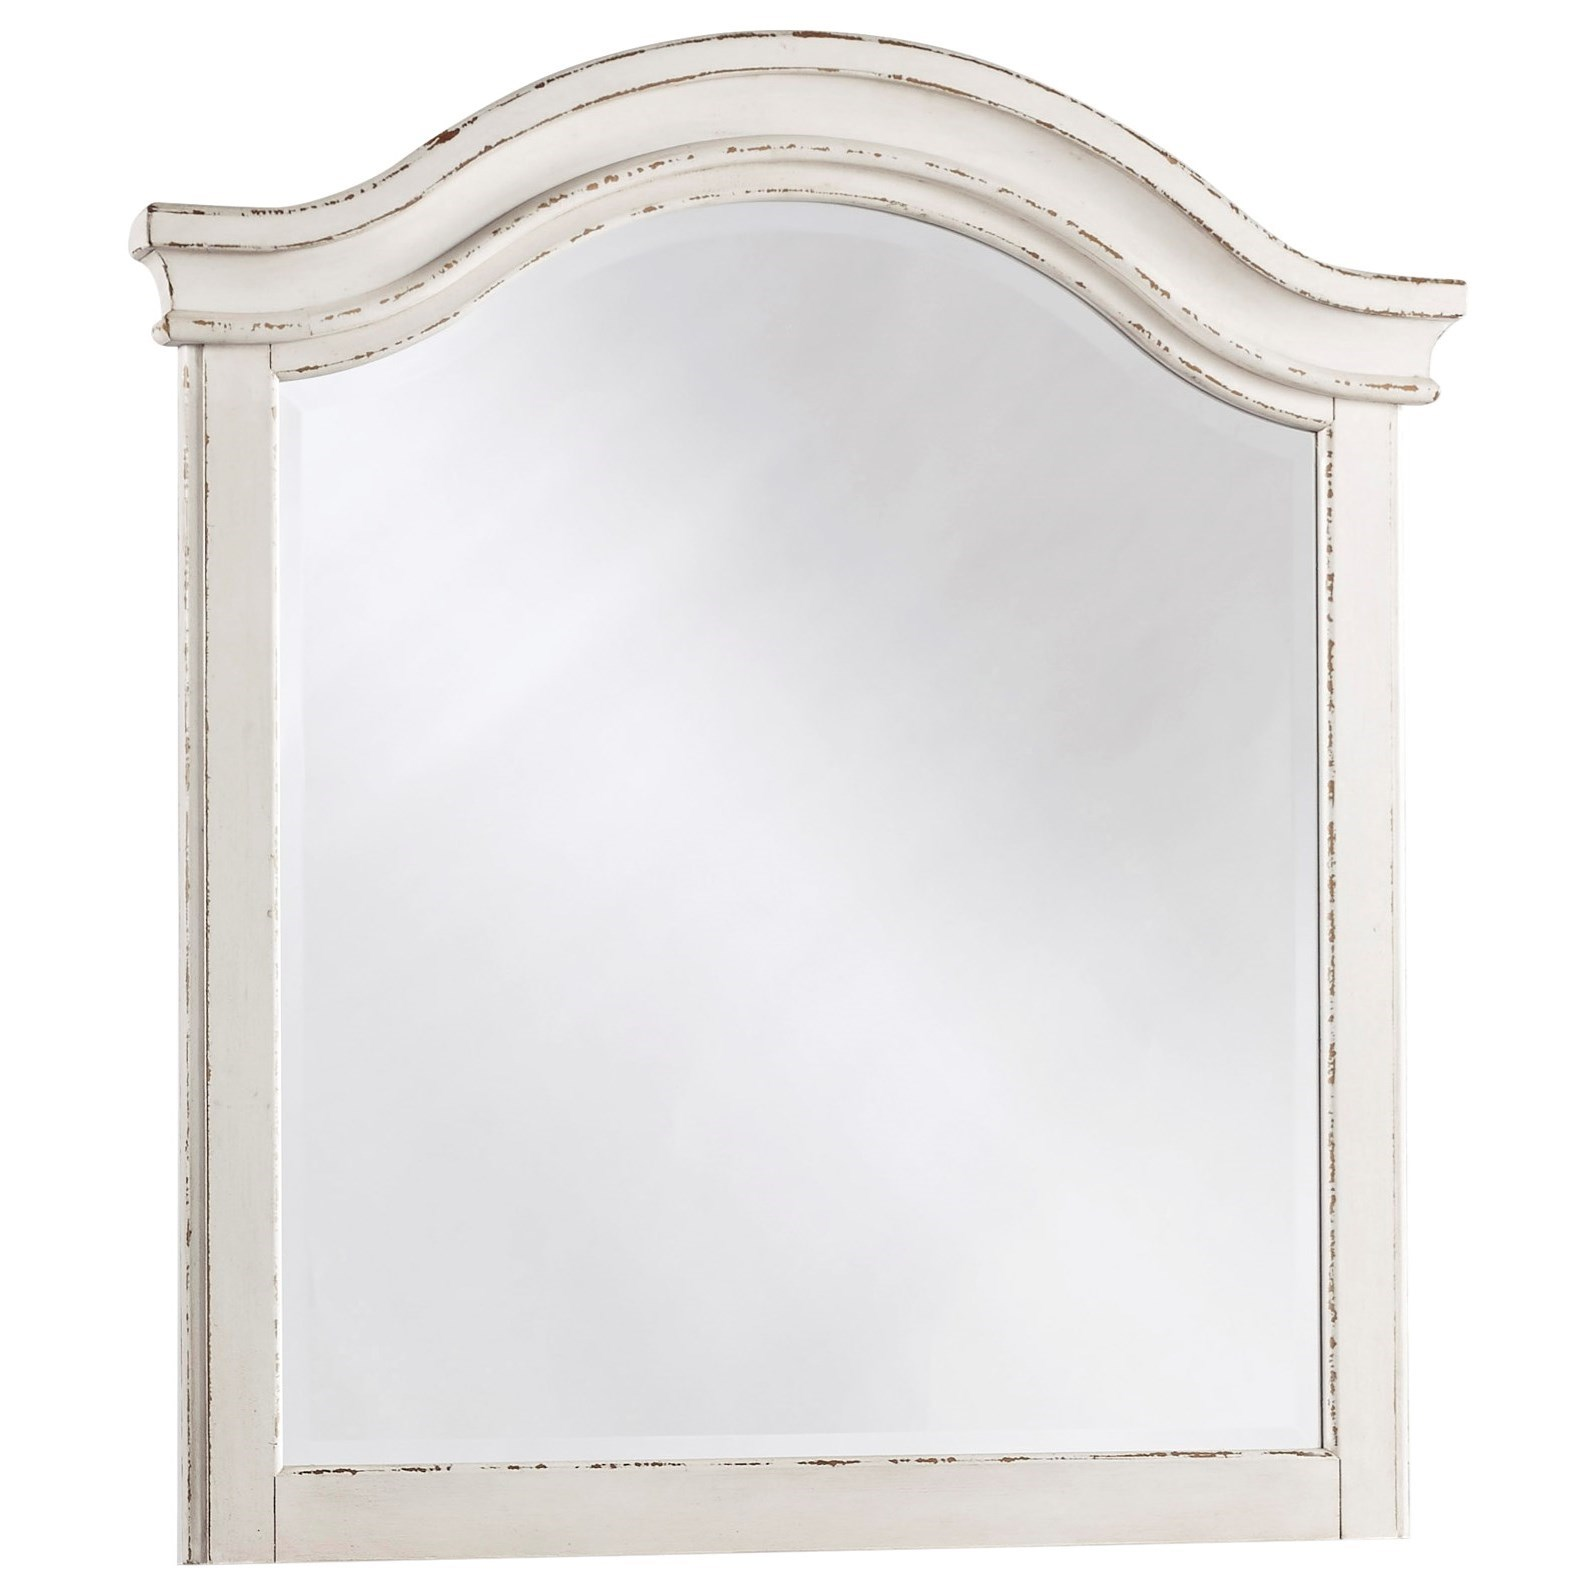 Realyn Youth Mirror by Signature Design by Ashley at Beck's Furniture